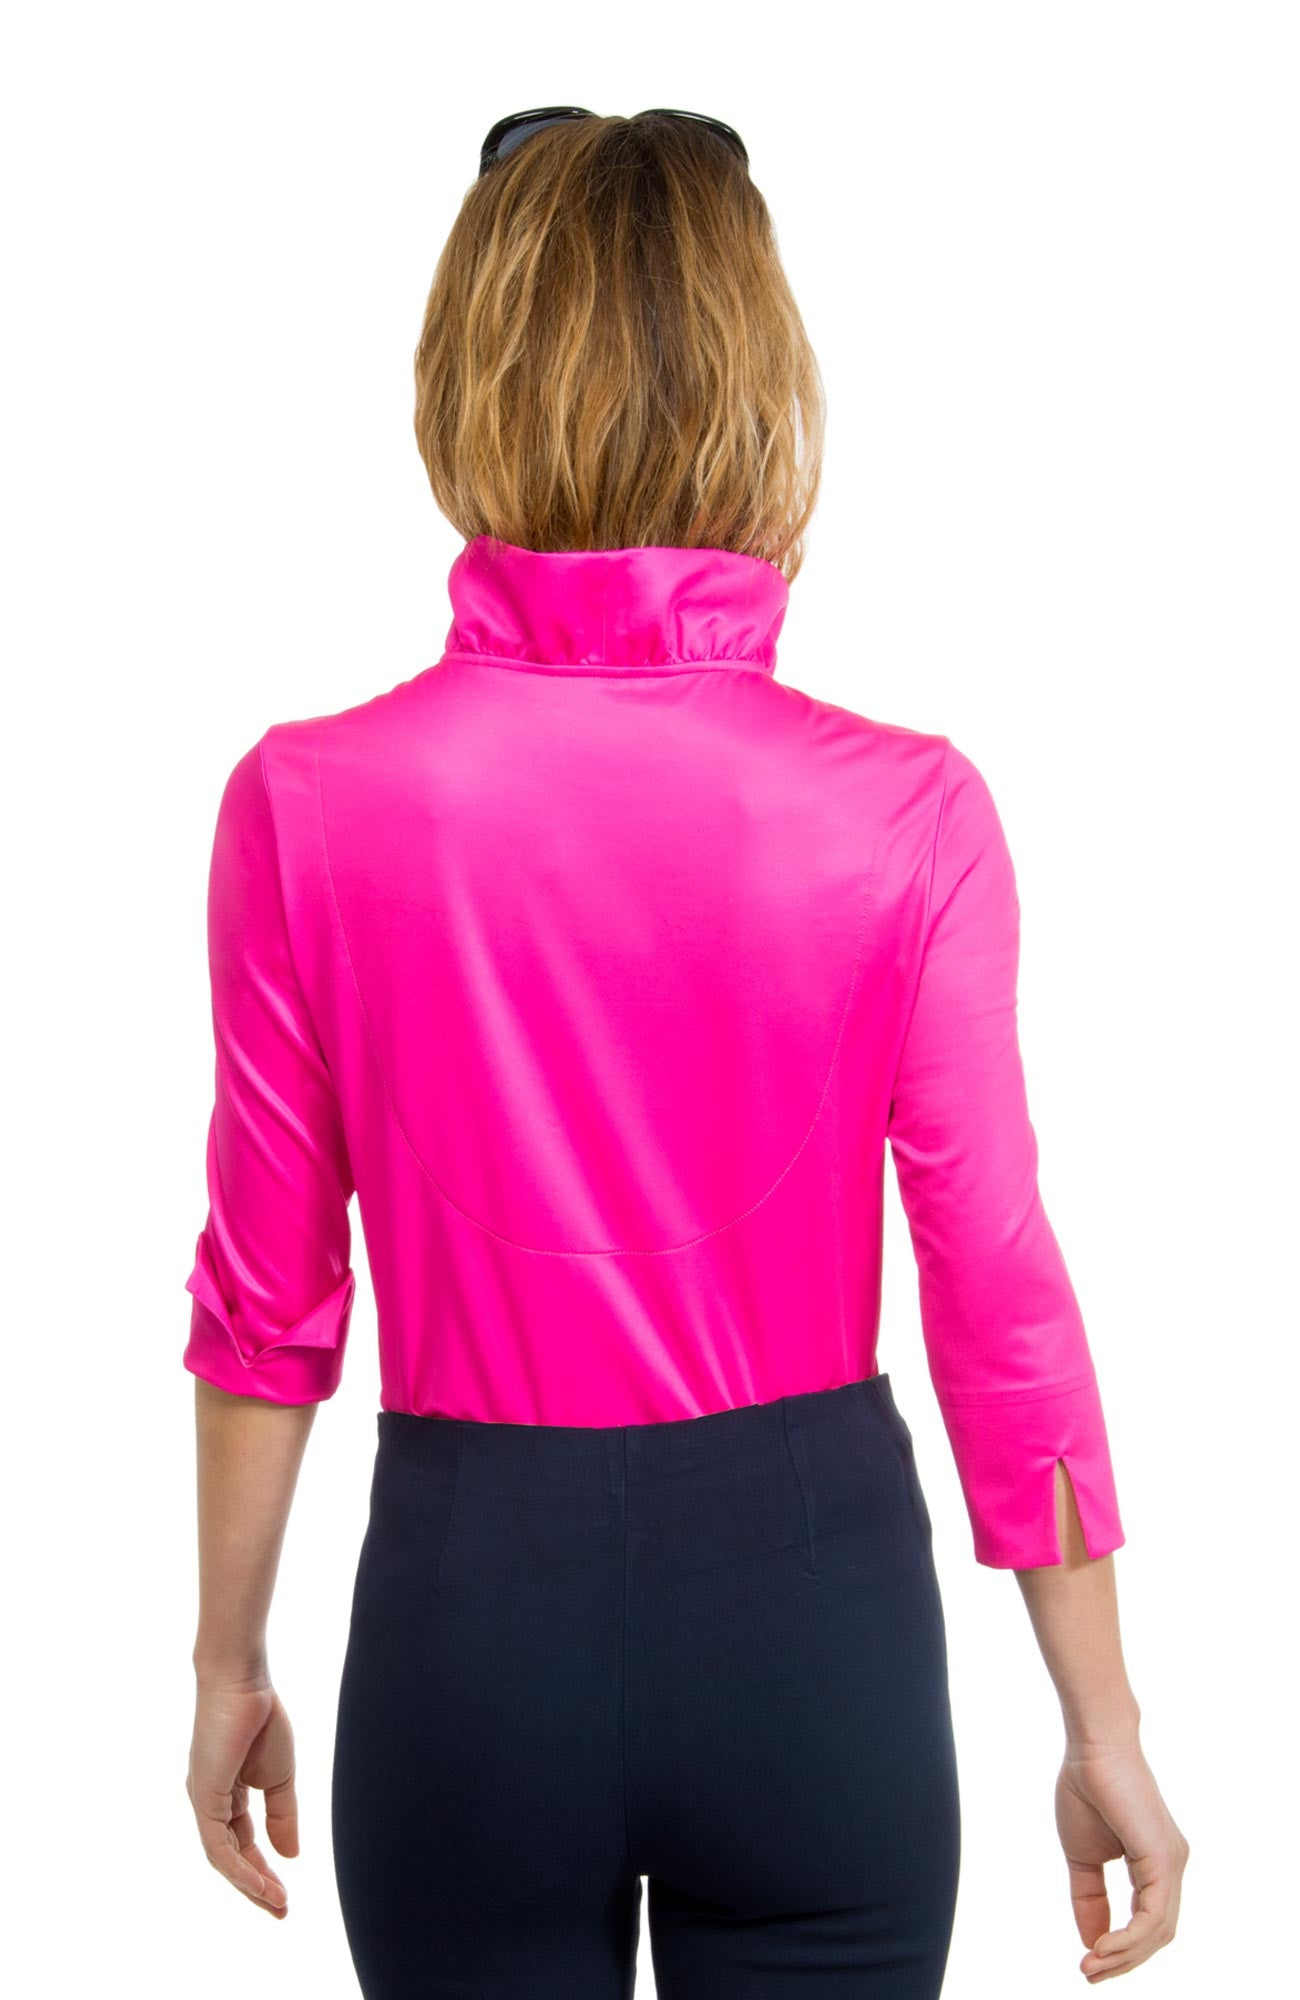 Gretchen Scott Ruff Neck Jersey Top - Solid Pink